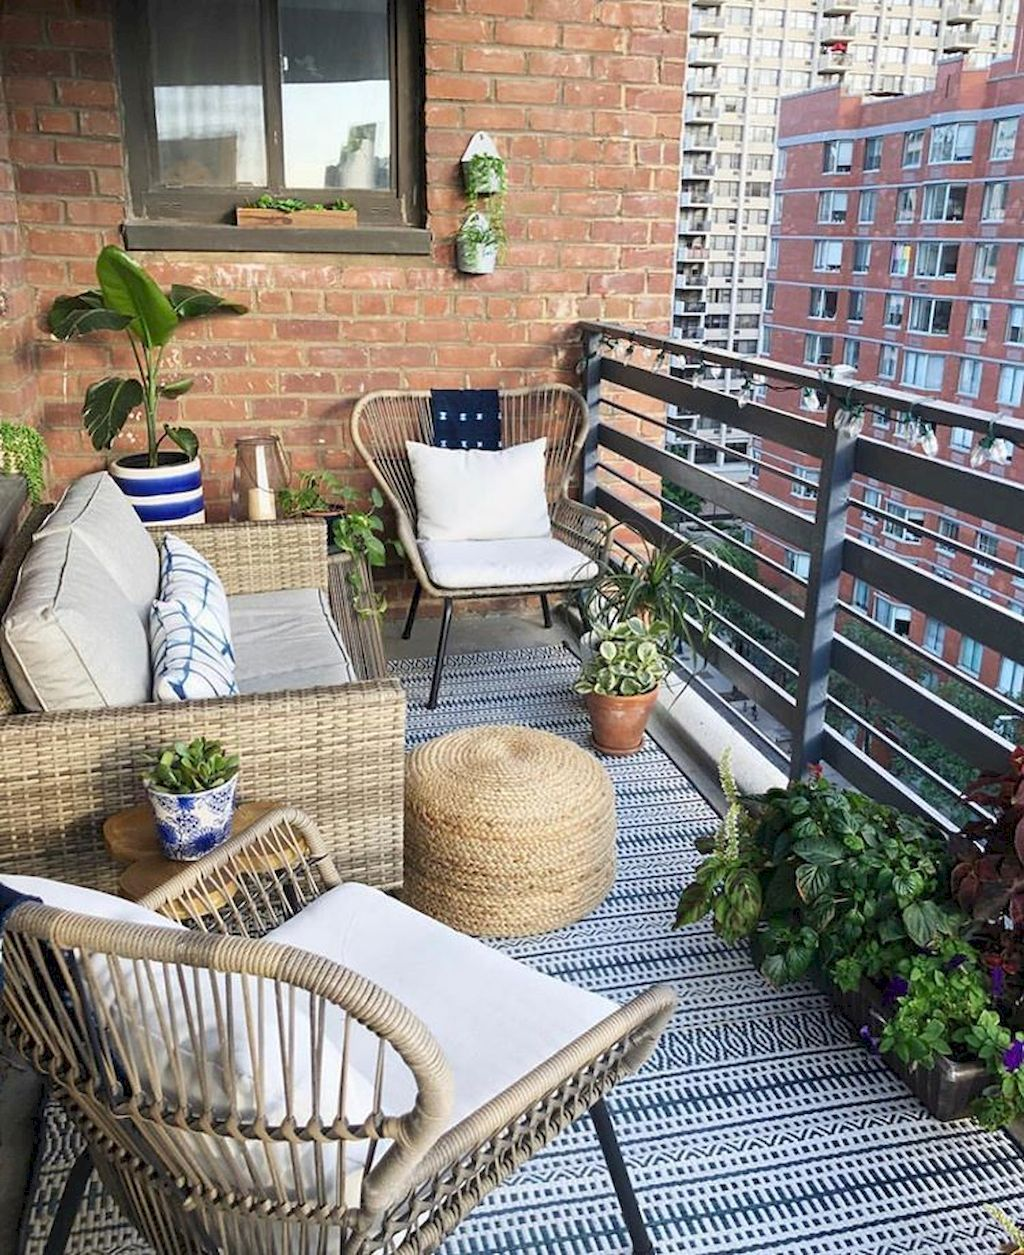 Miraculous Adore Your Balcony With Stylish Balcony Adorning Concepts In 2020 Balcony Decor Balcony Design Small Balcony Decor